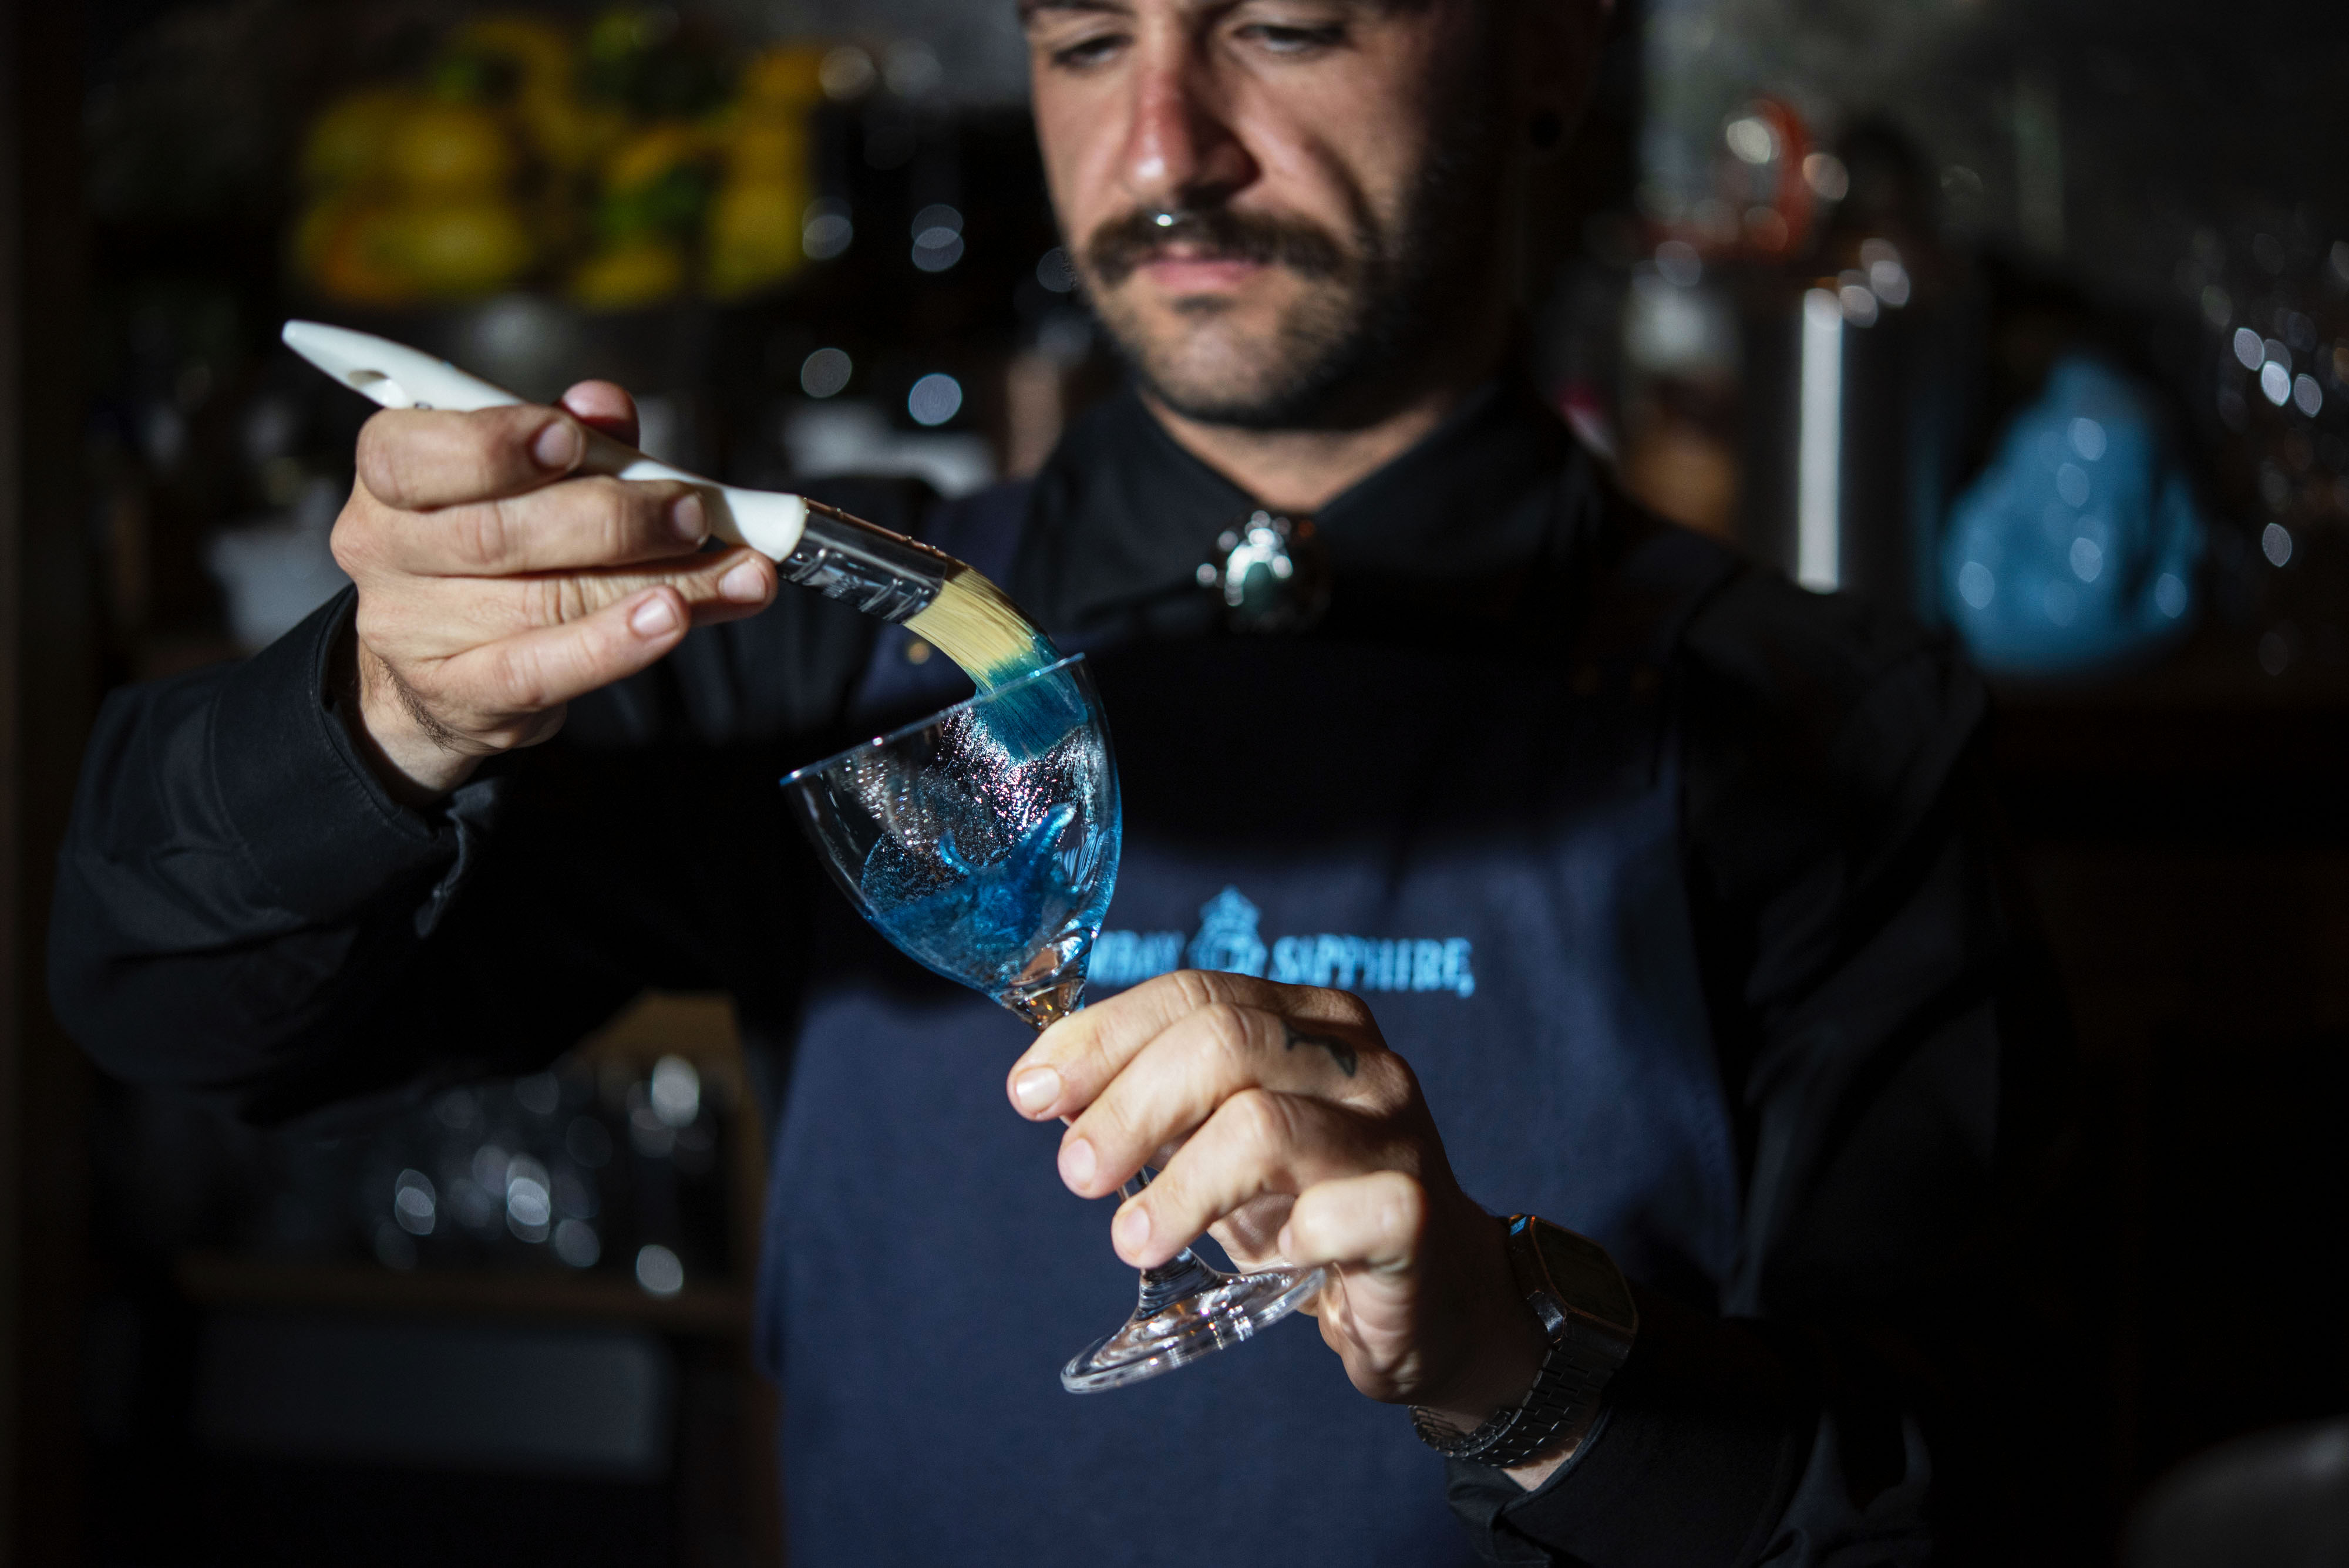 Alan Walsh X Bombay Sapphire art exhibition at The Barber Shop